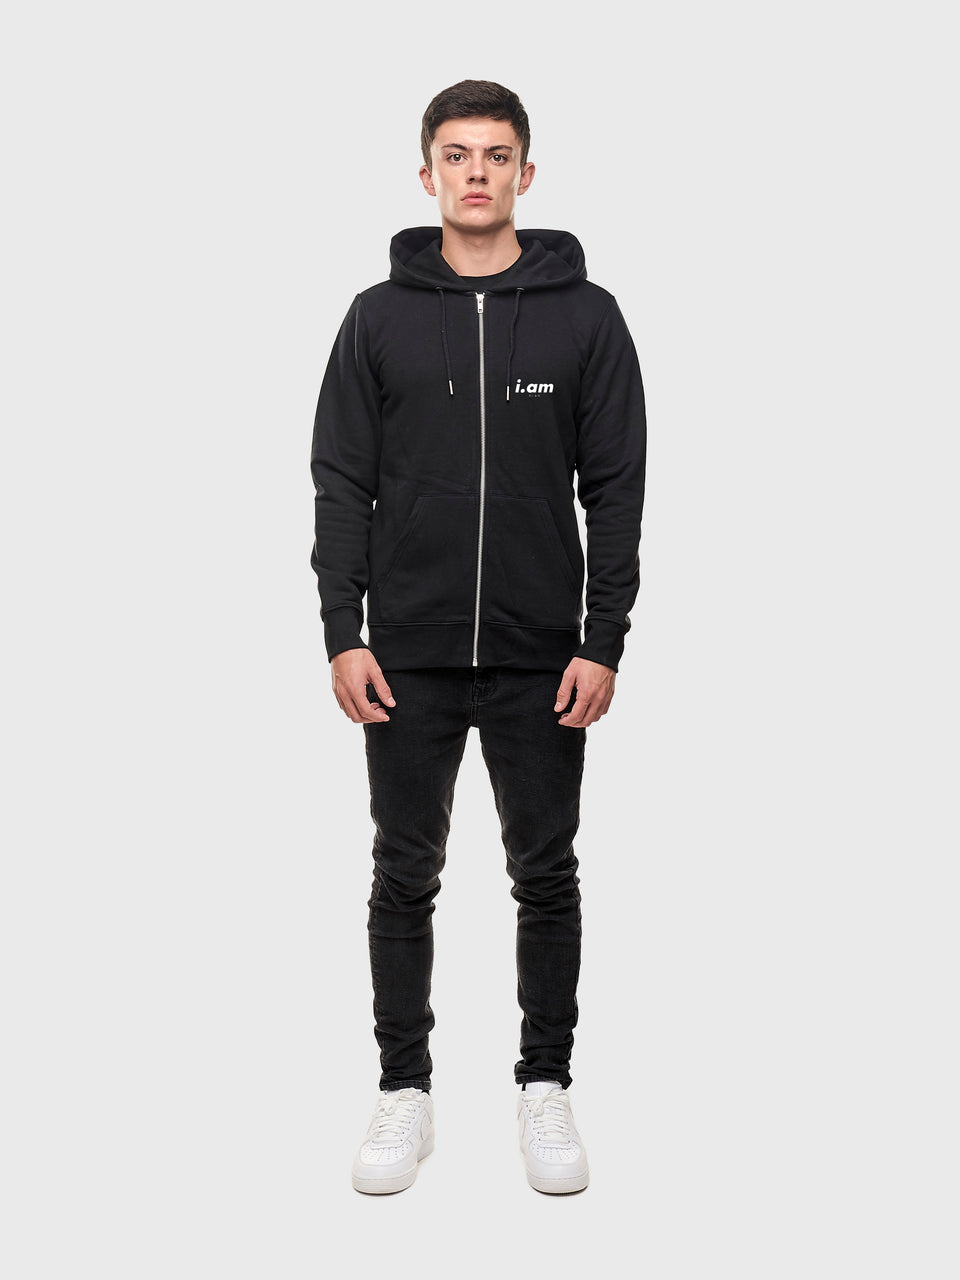 Hundo P - Black - Unisex zip up hoodie